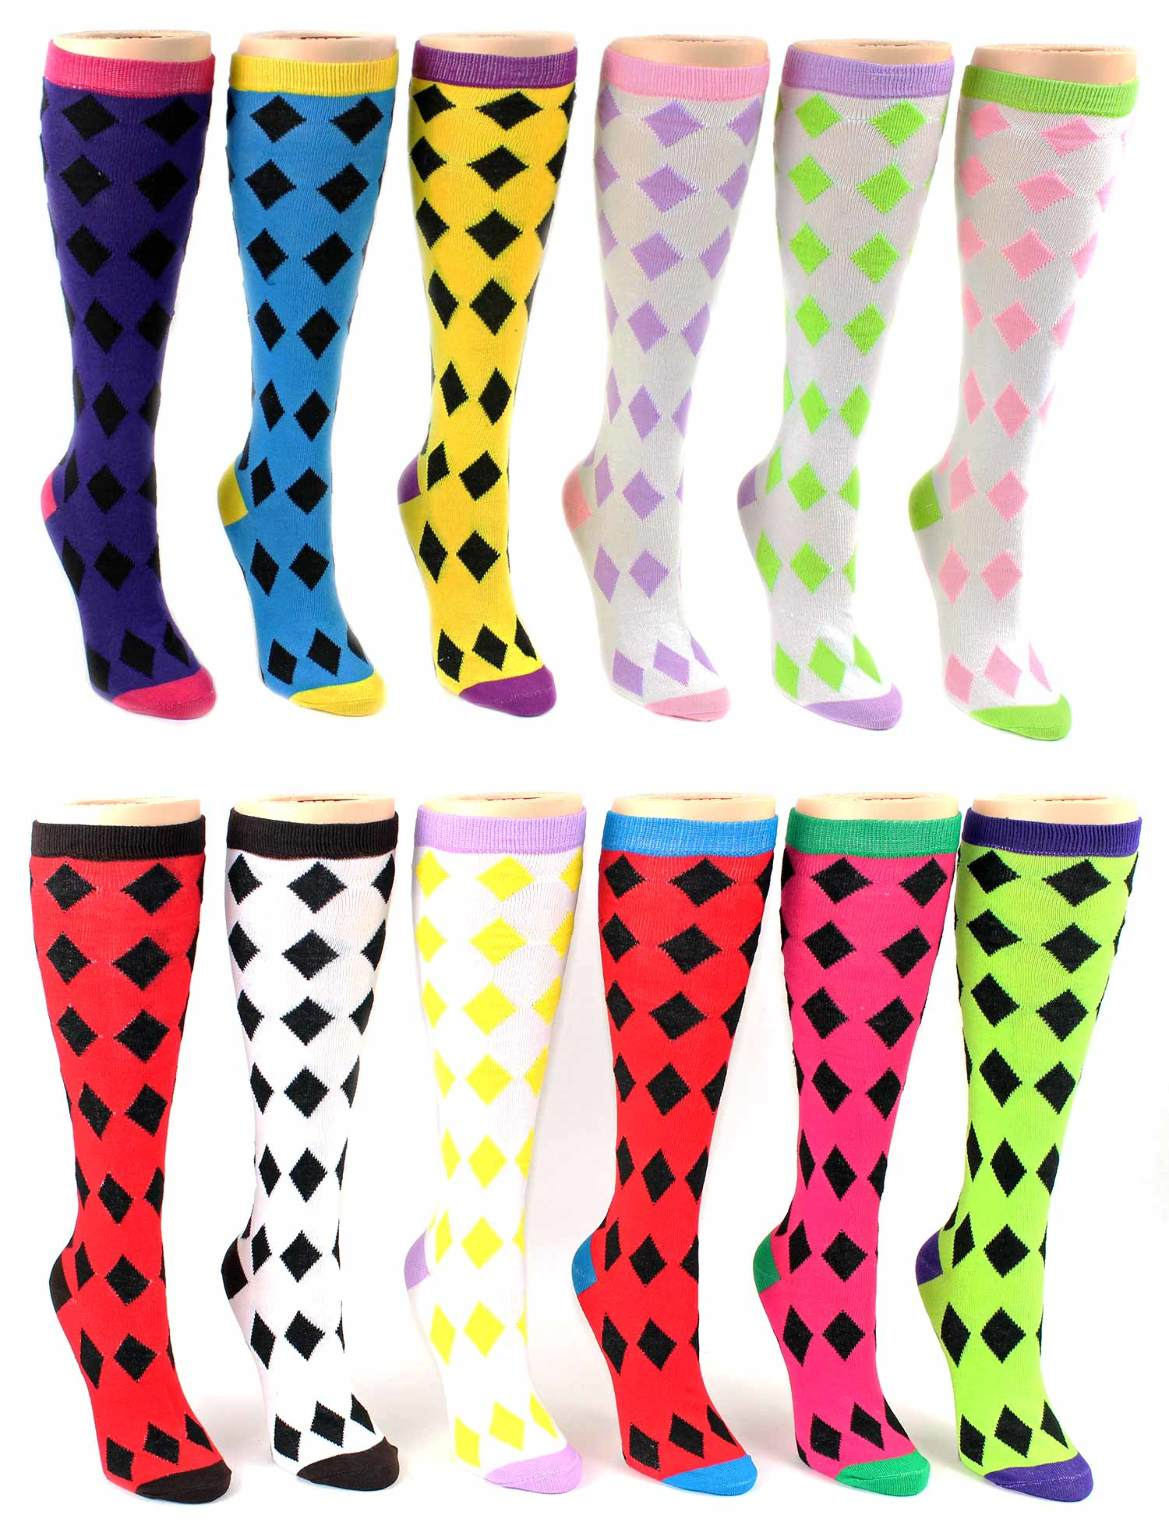 Womens Knee High COMPUTER Argyle Socks - Size 9-11 [328638]